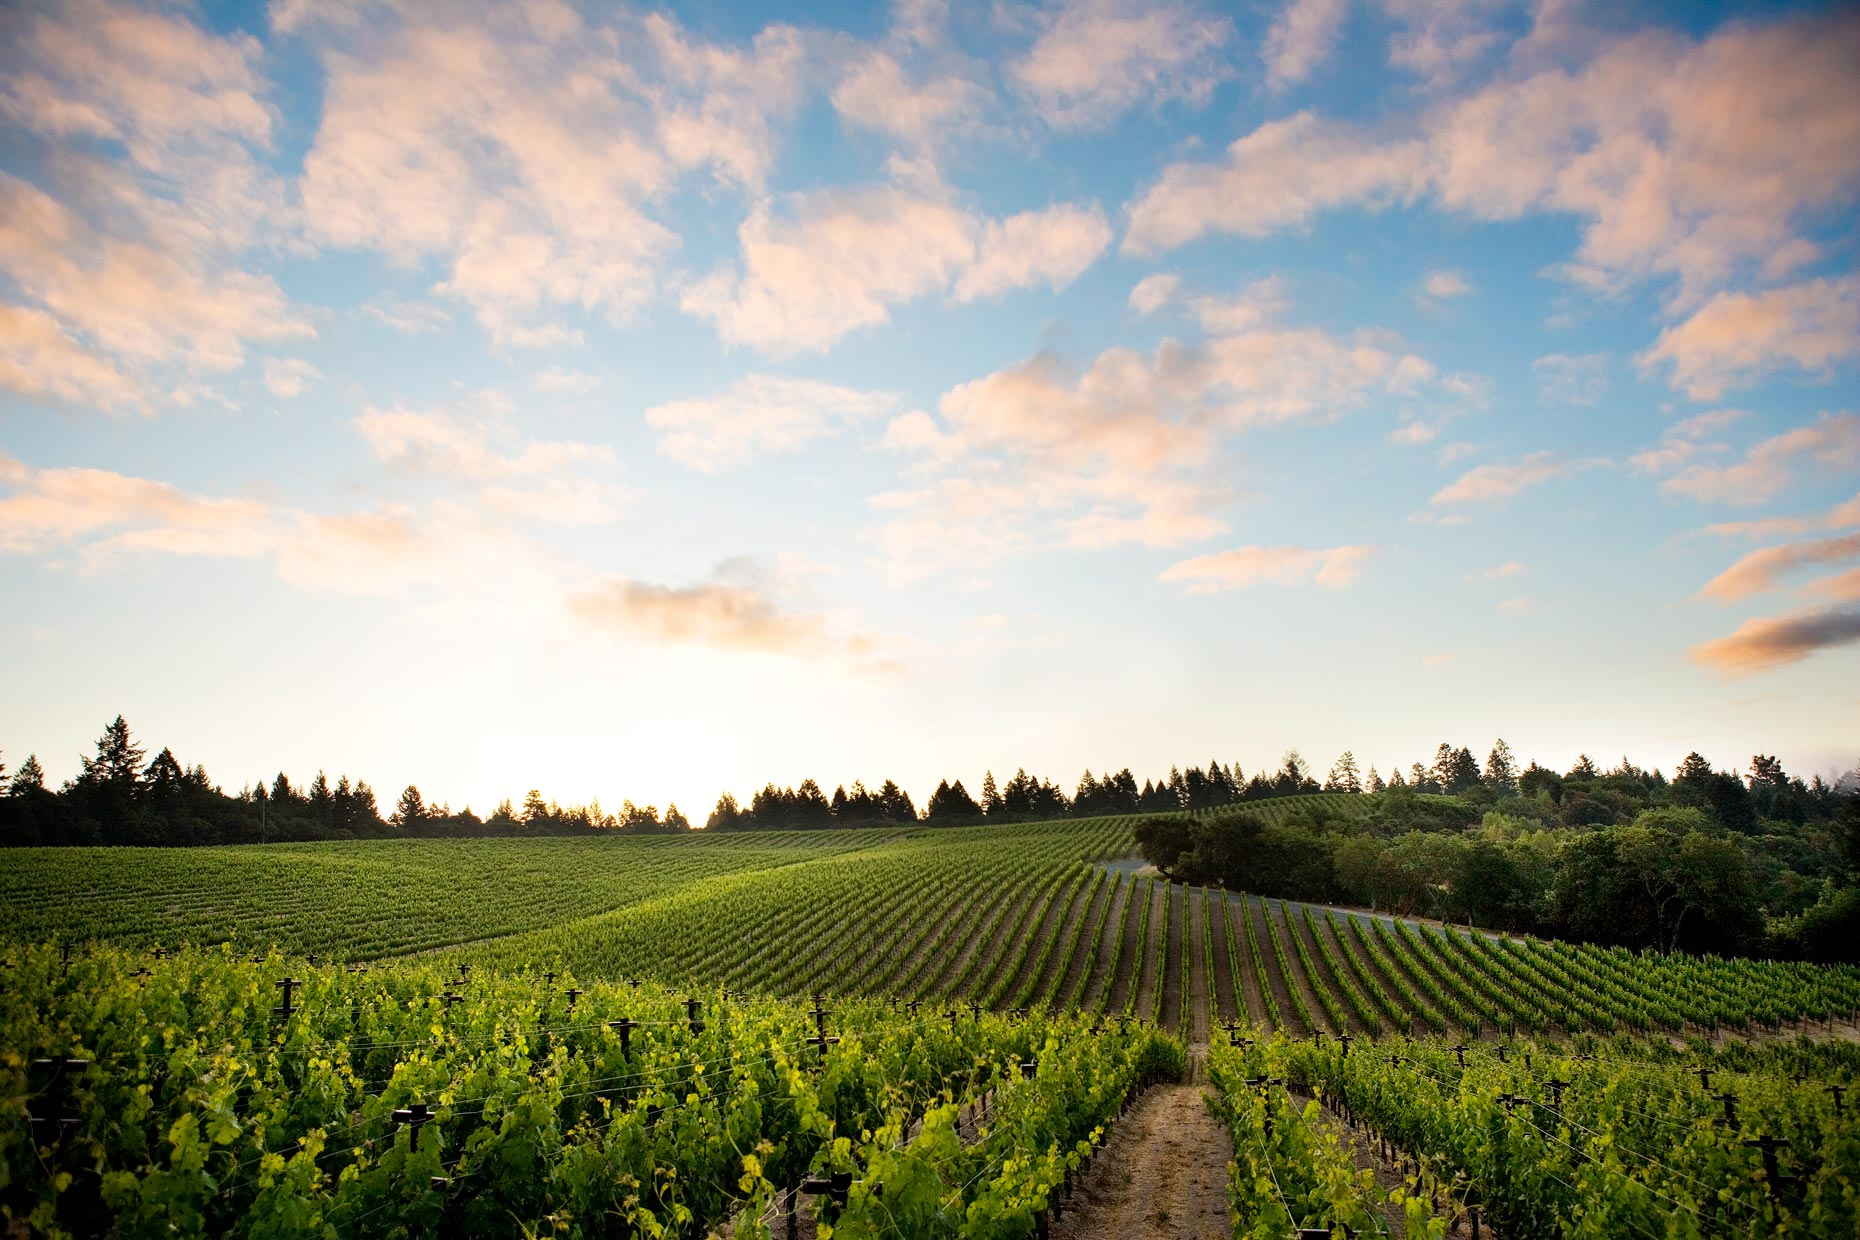 Napa_Sloan_dawn_vineyard_5934